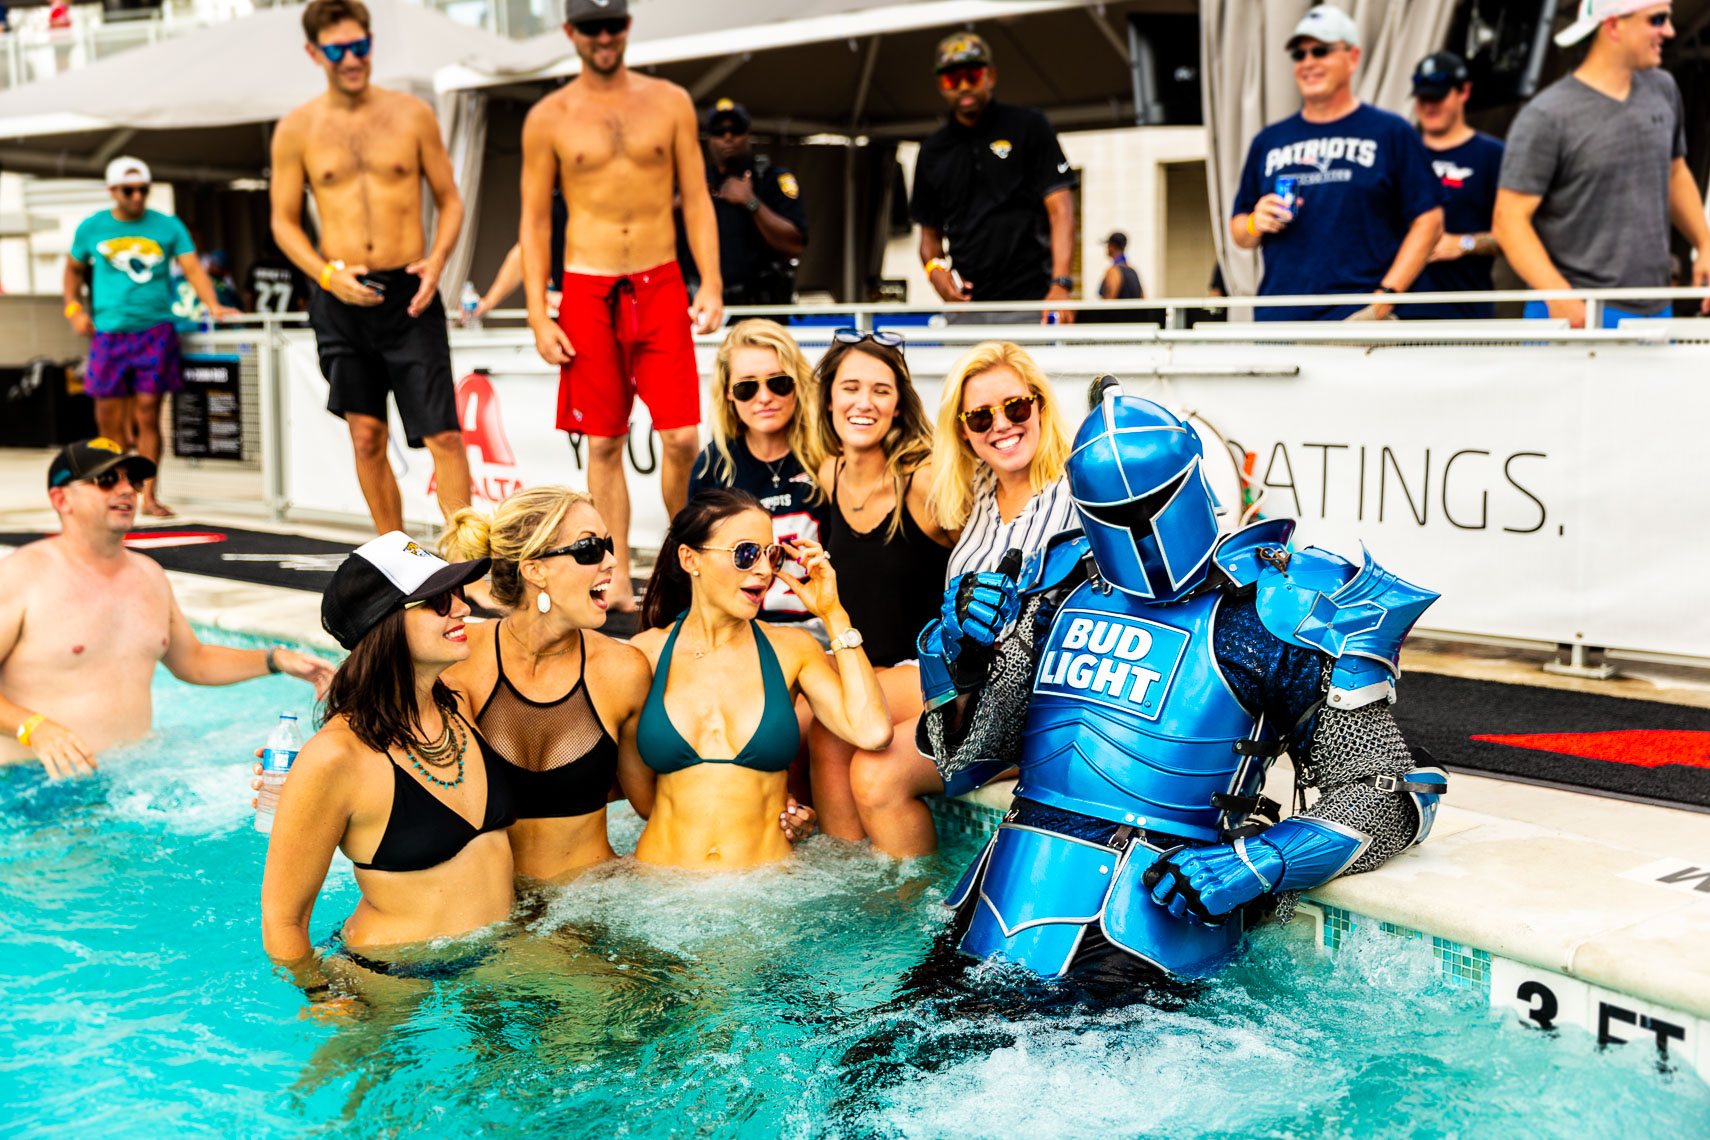 The Bud Light Bud Knight in the pool